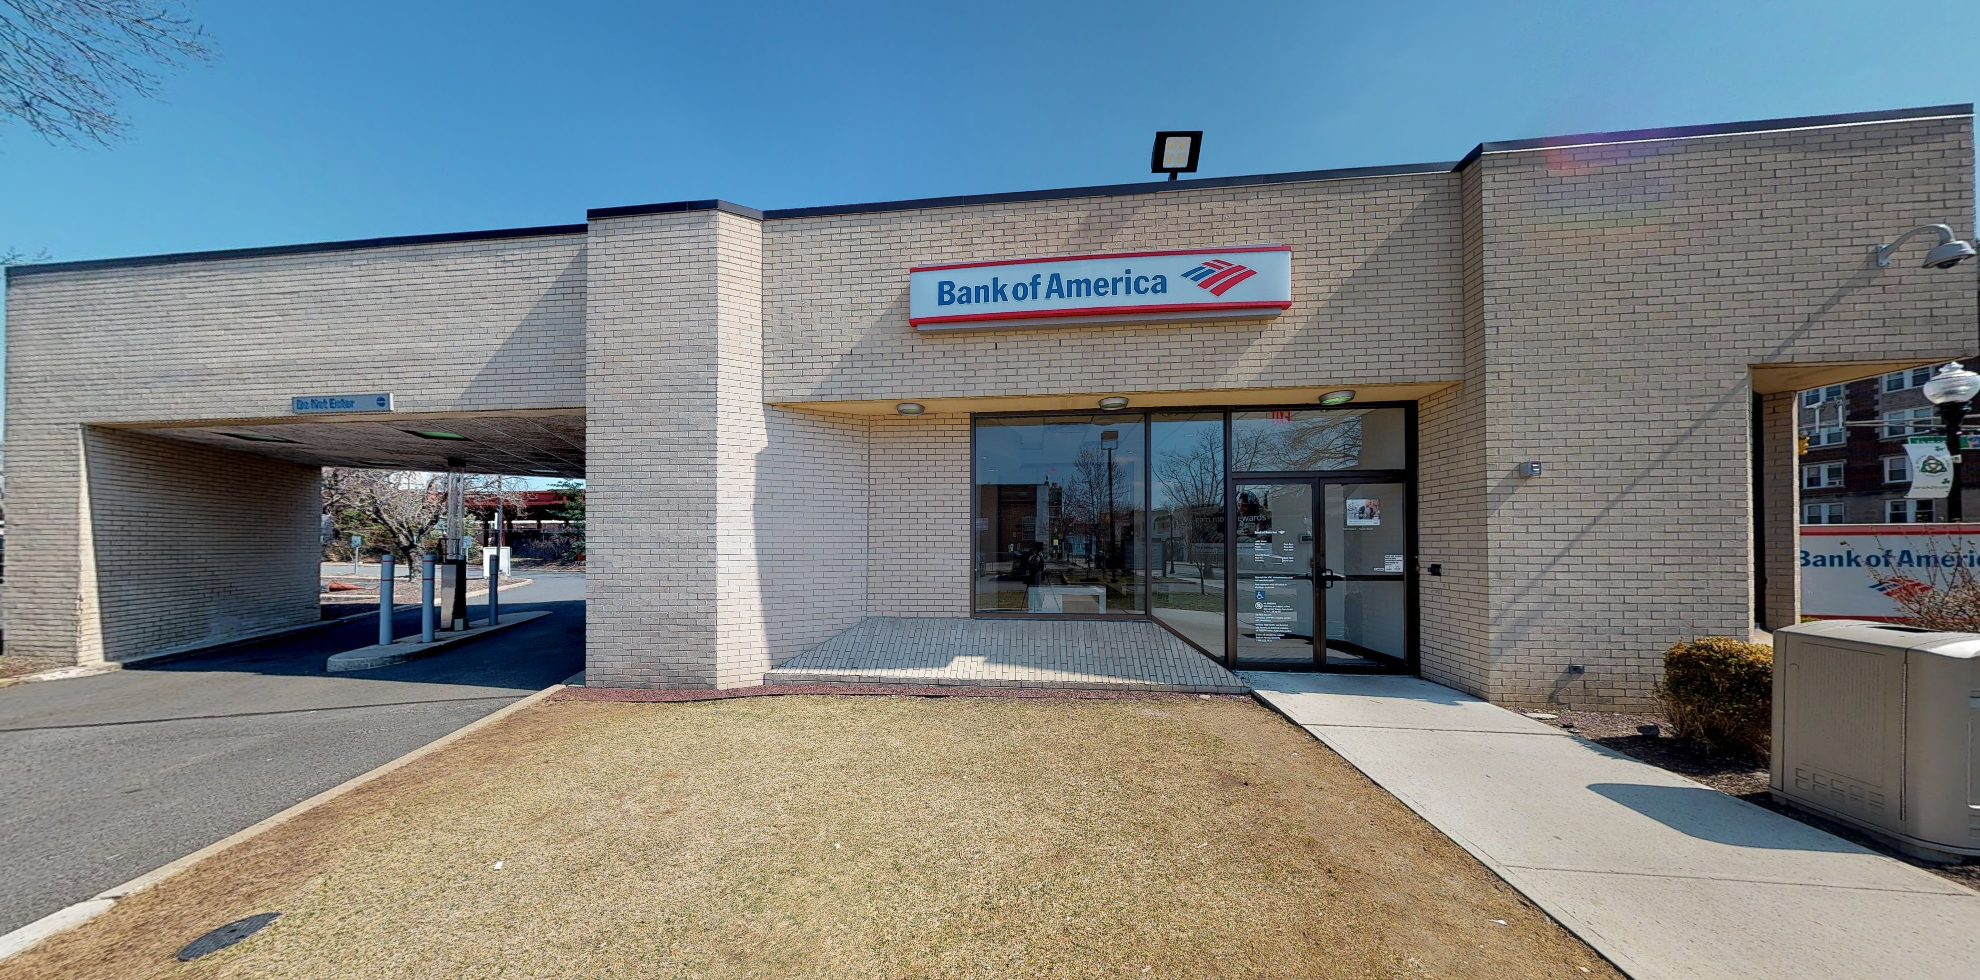 Bank of America financial center with walk-up ATM | 188 South St, Morristown, NJ 07960